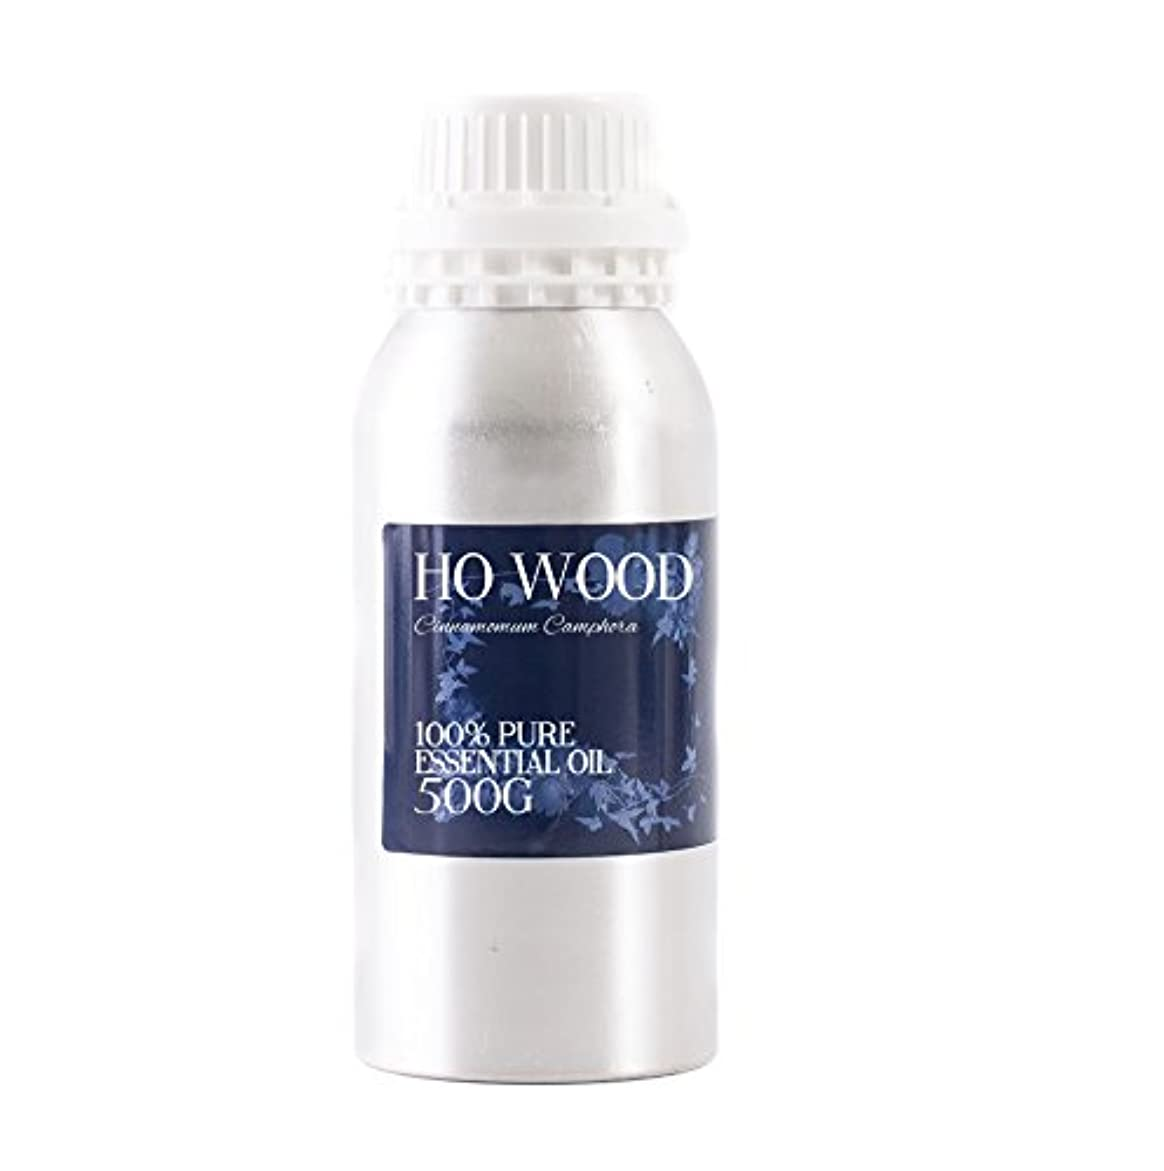 プレーヤーちょうつがい極貧Mystic Moments | Ho Wood Essential Oil - 500g - 100% Pure